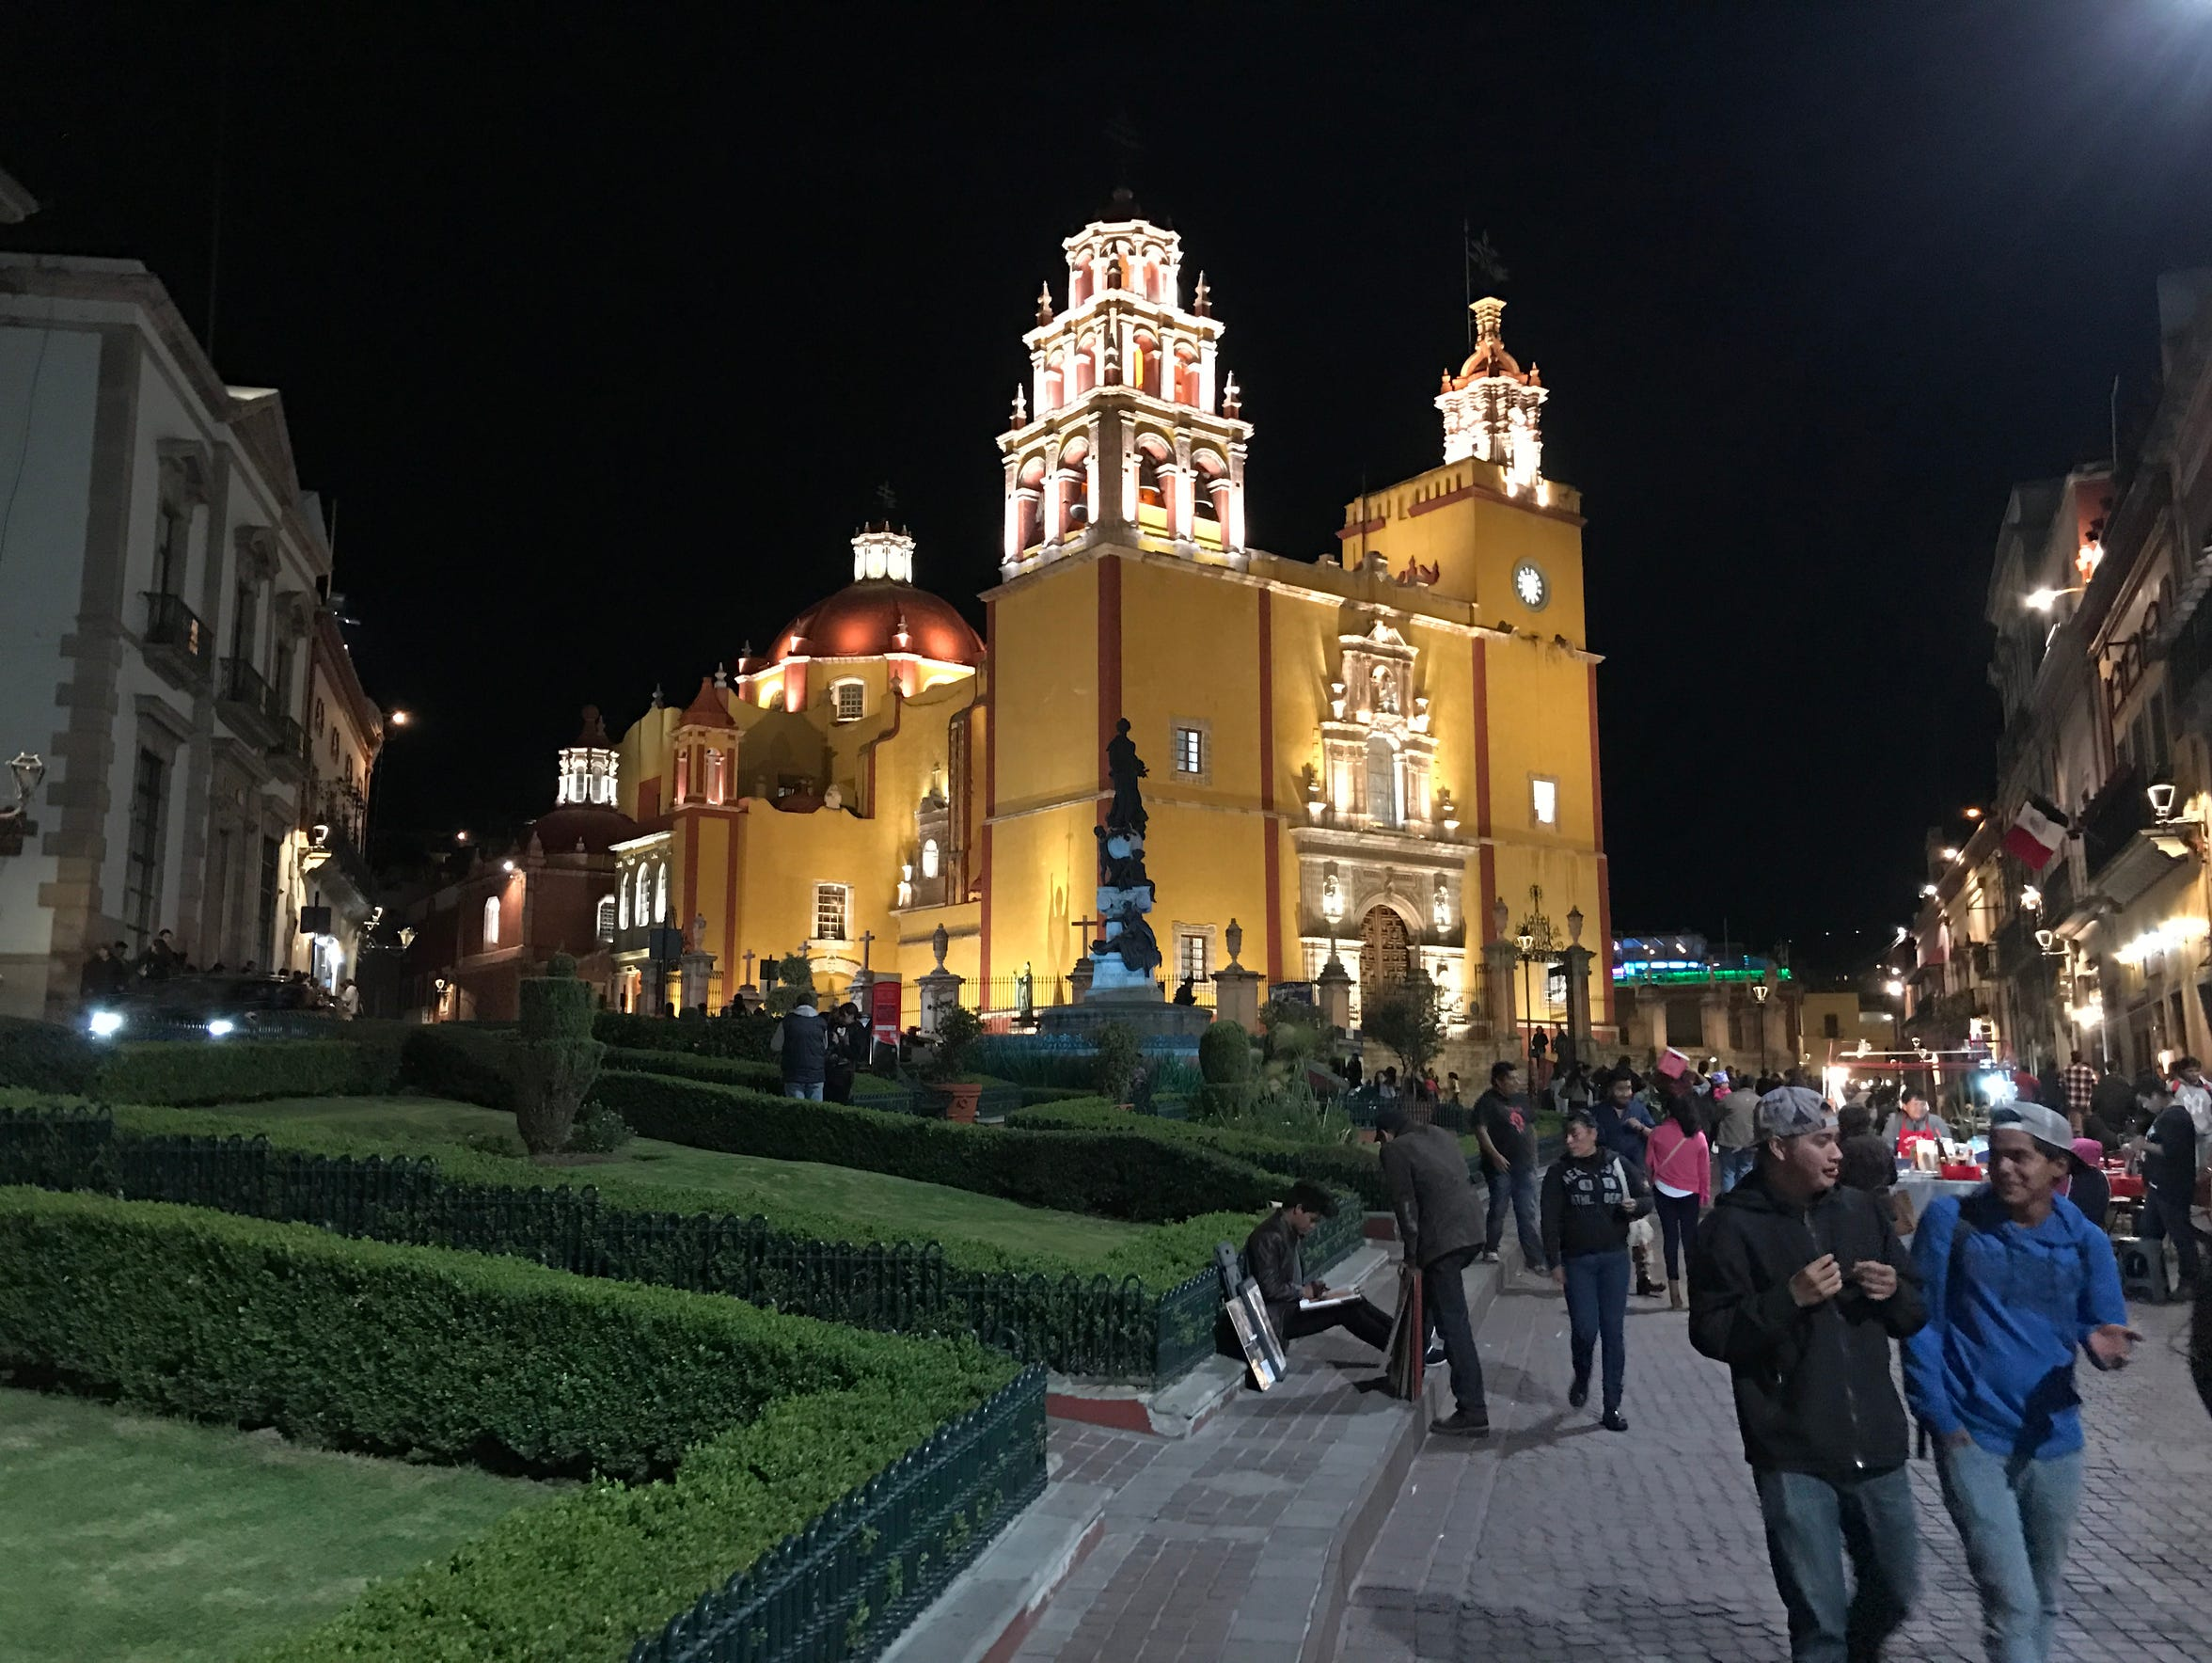 People walk by a church awash in lights in Guanajuato.